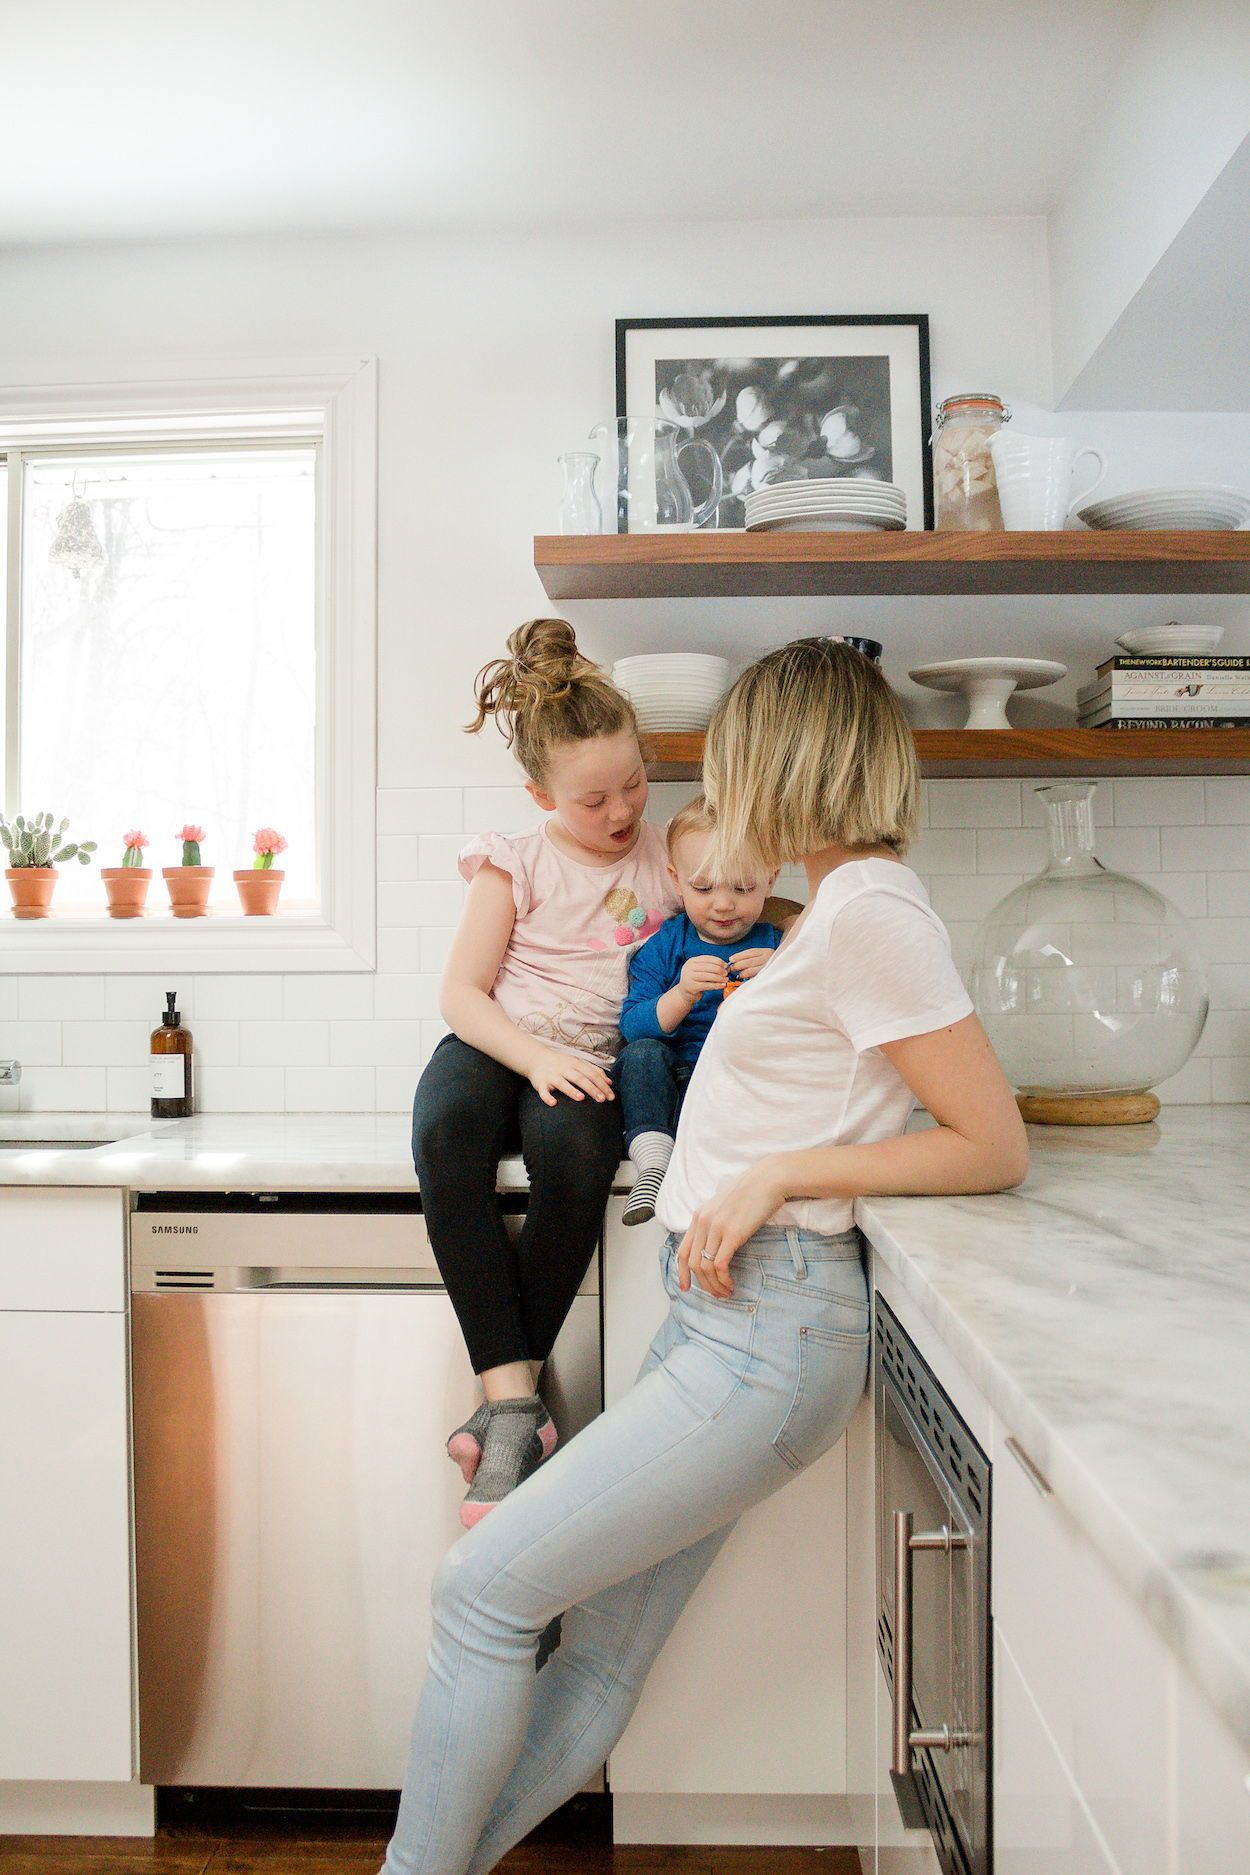 Ikea Kitchen Design Cost All The Details Of Our Custom Ikea Kitchen And What It Cost In 2019